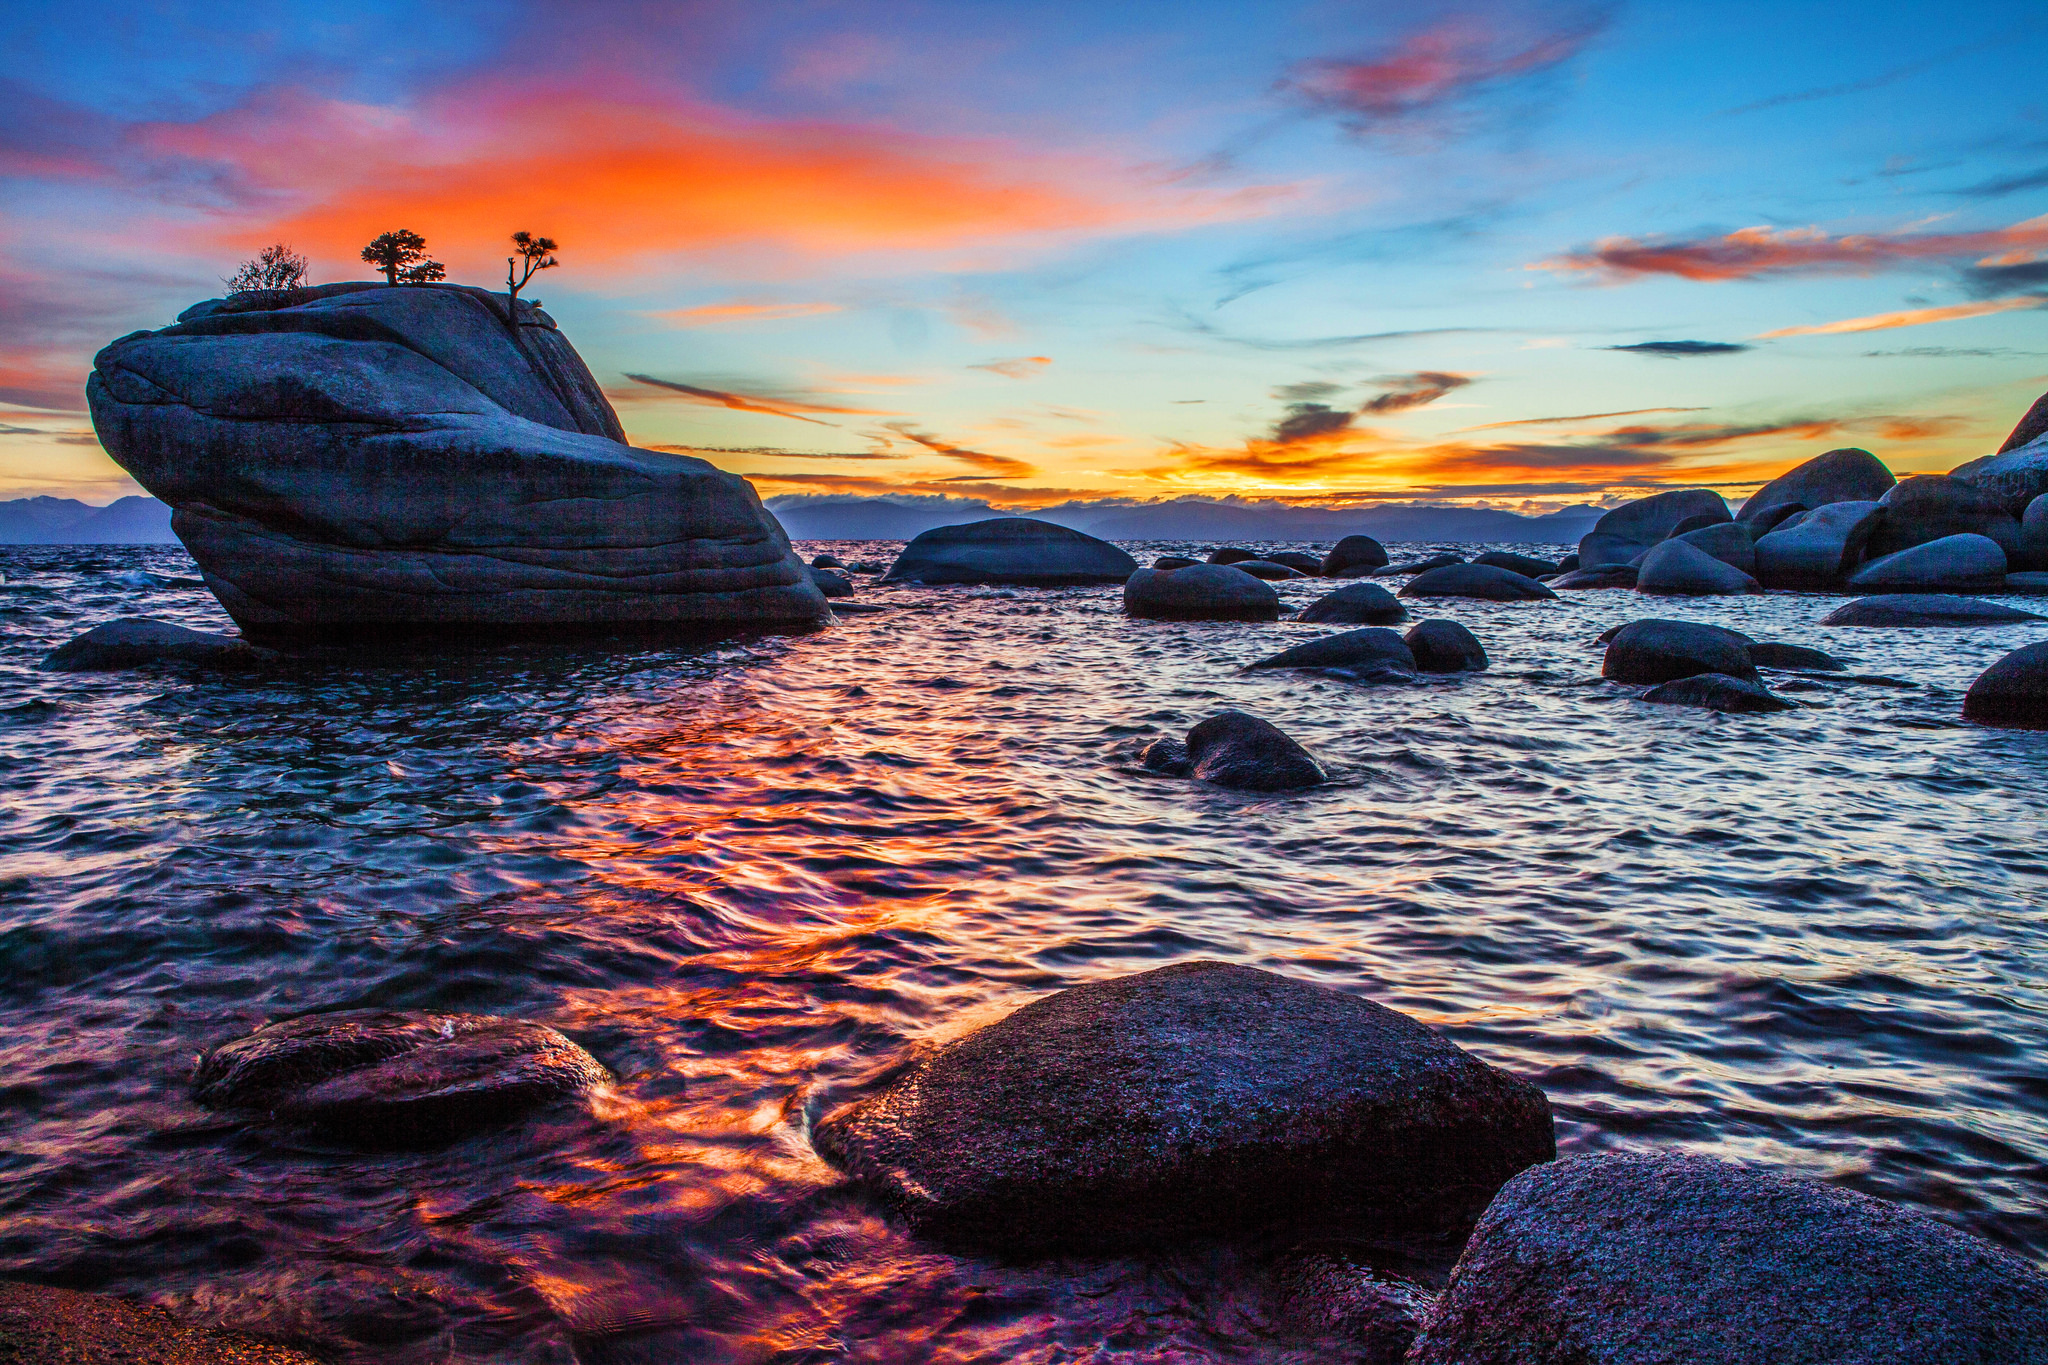 Bonsai Rock Sunset at Lake Tahoe, Anthony Quintano October 17, 2014